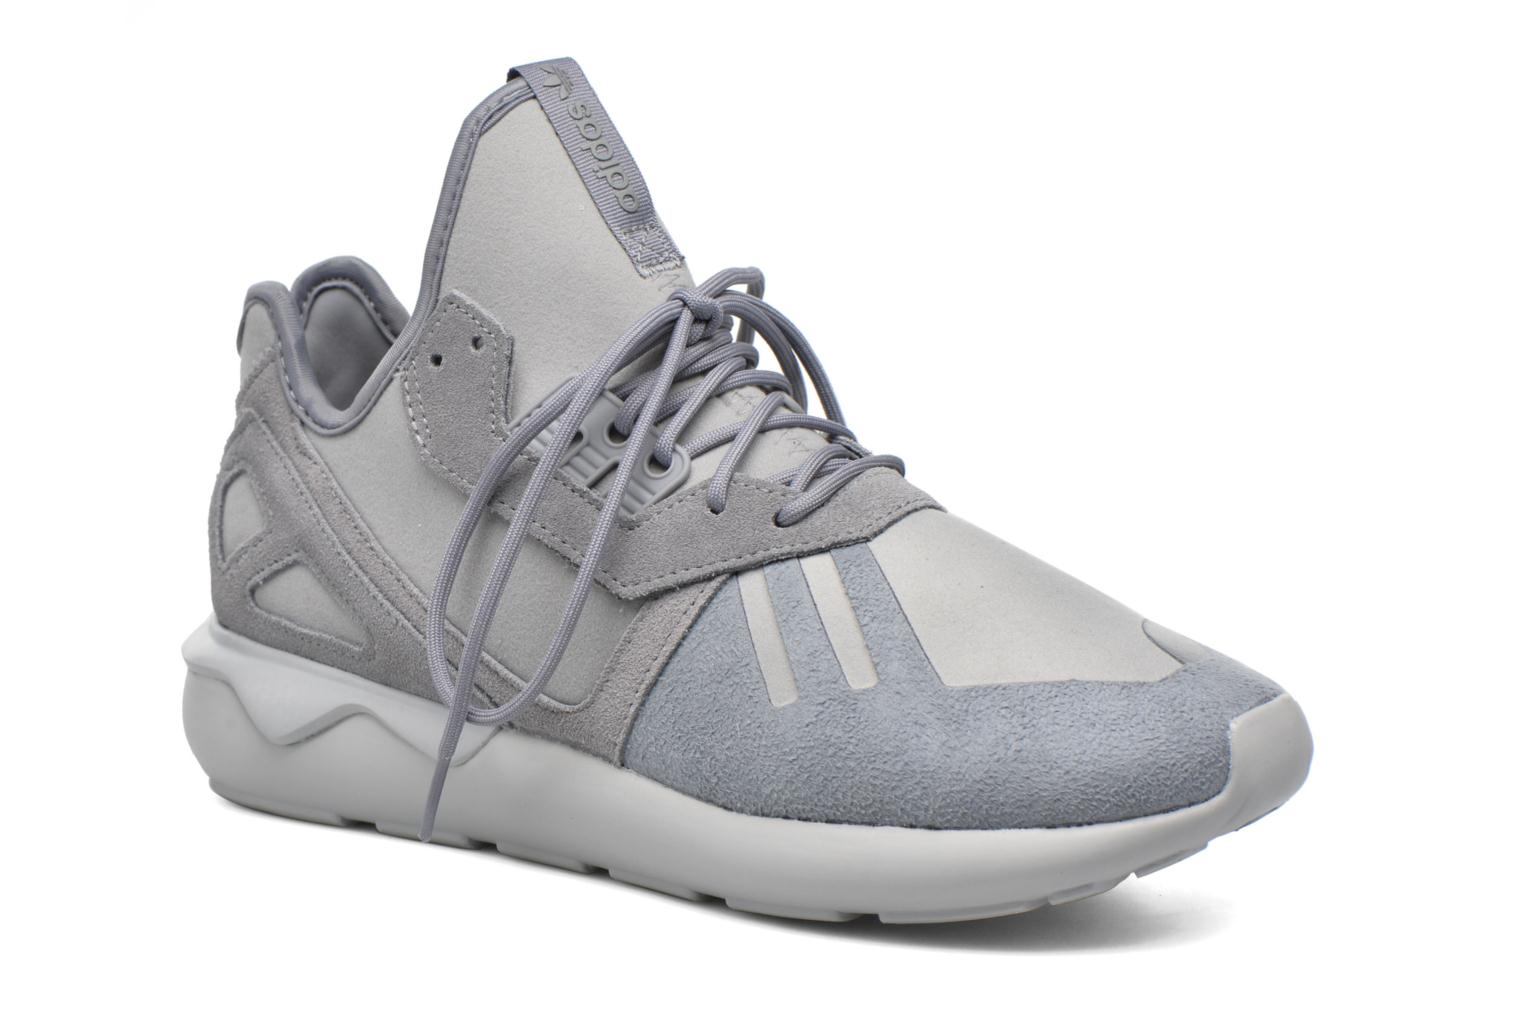 Baskets Adidas Originals Tubular Runner Gris vue détail/paire